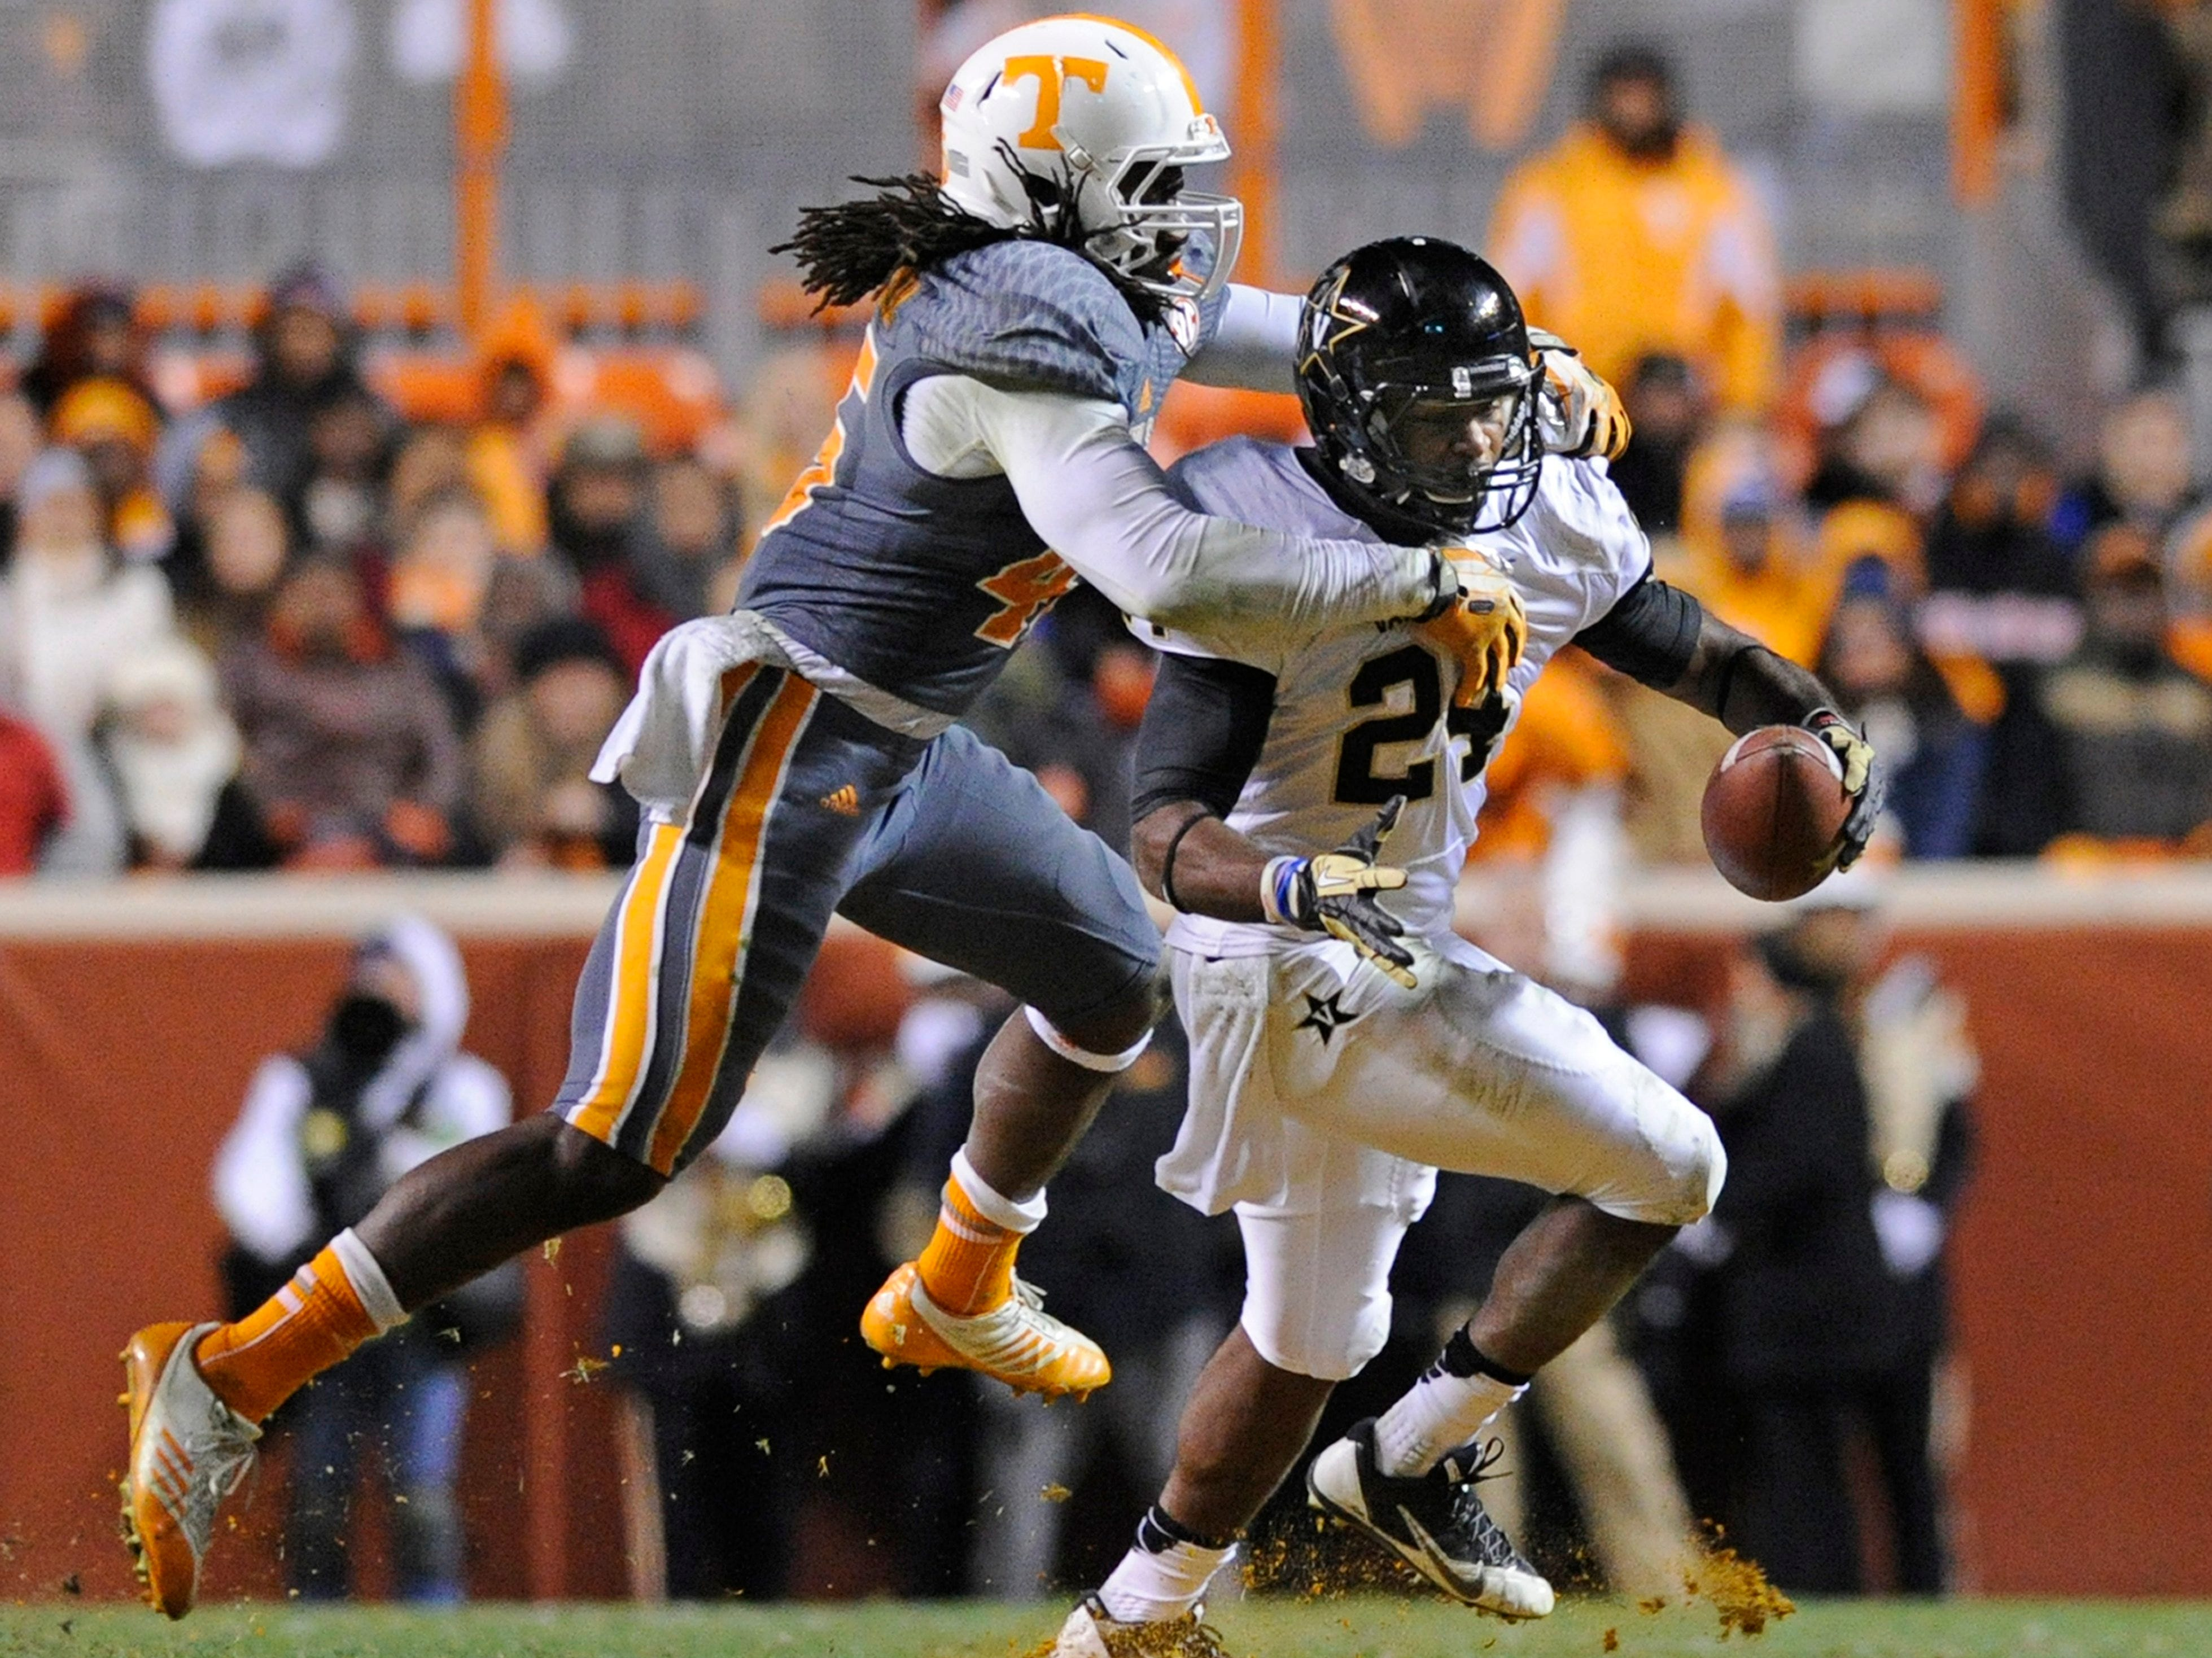 Tennessee linebacker A.J. Johnson (45) tackles Vanderbilt running back Wesley Tate (24) during the first half at Neyland Stadium in Knoxville on Saturday, Nov. 23, 2013.